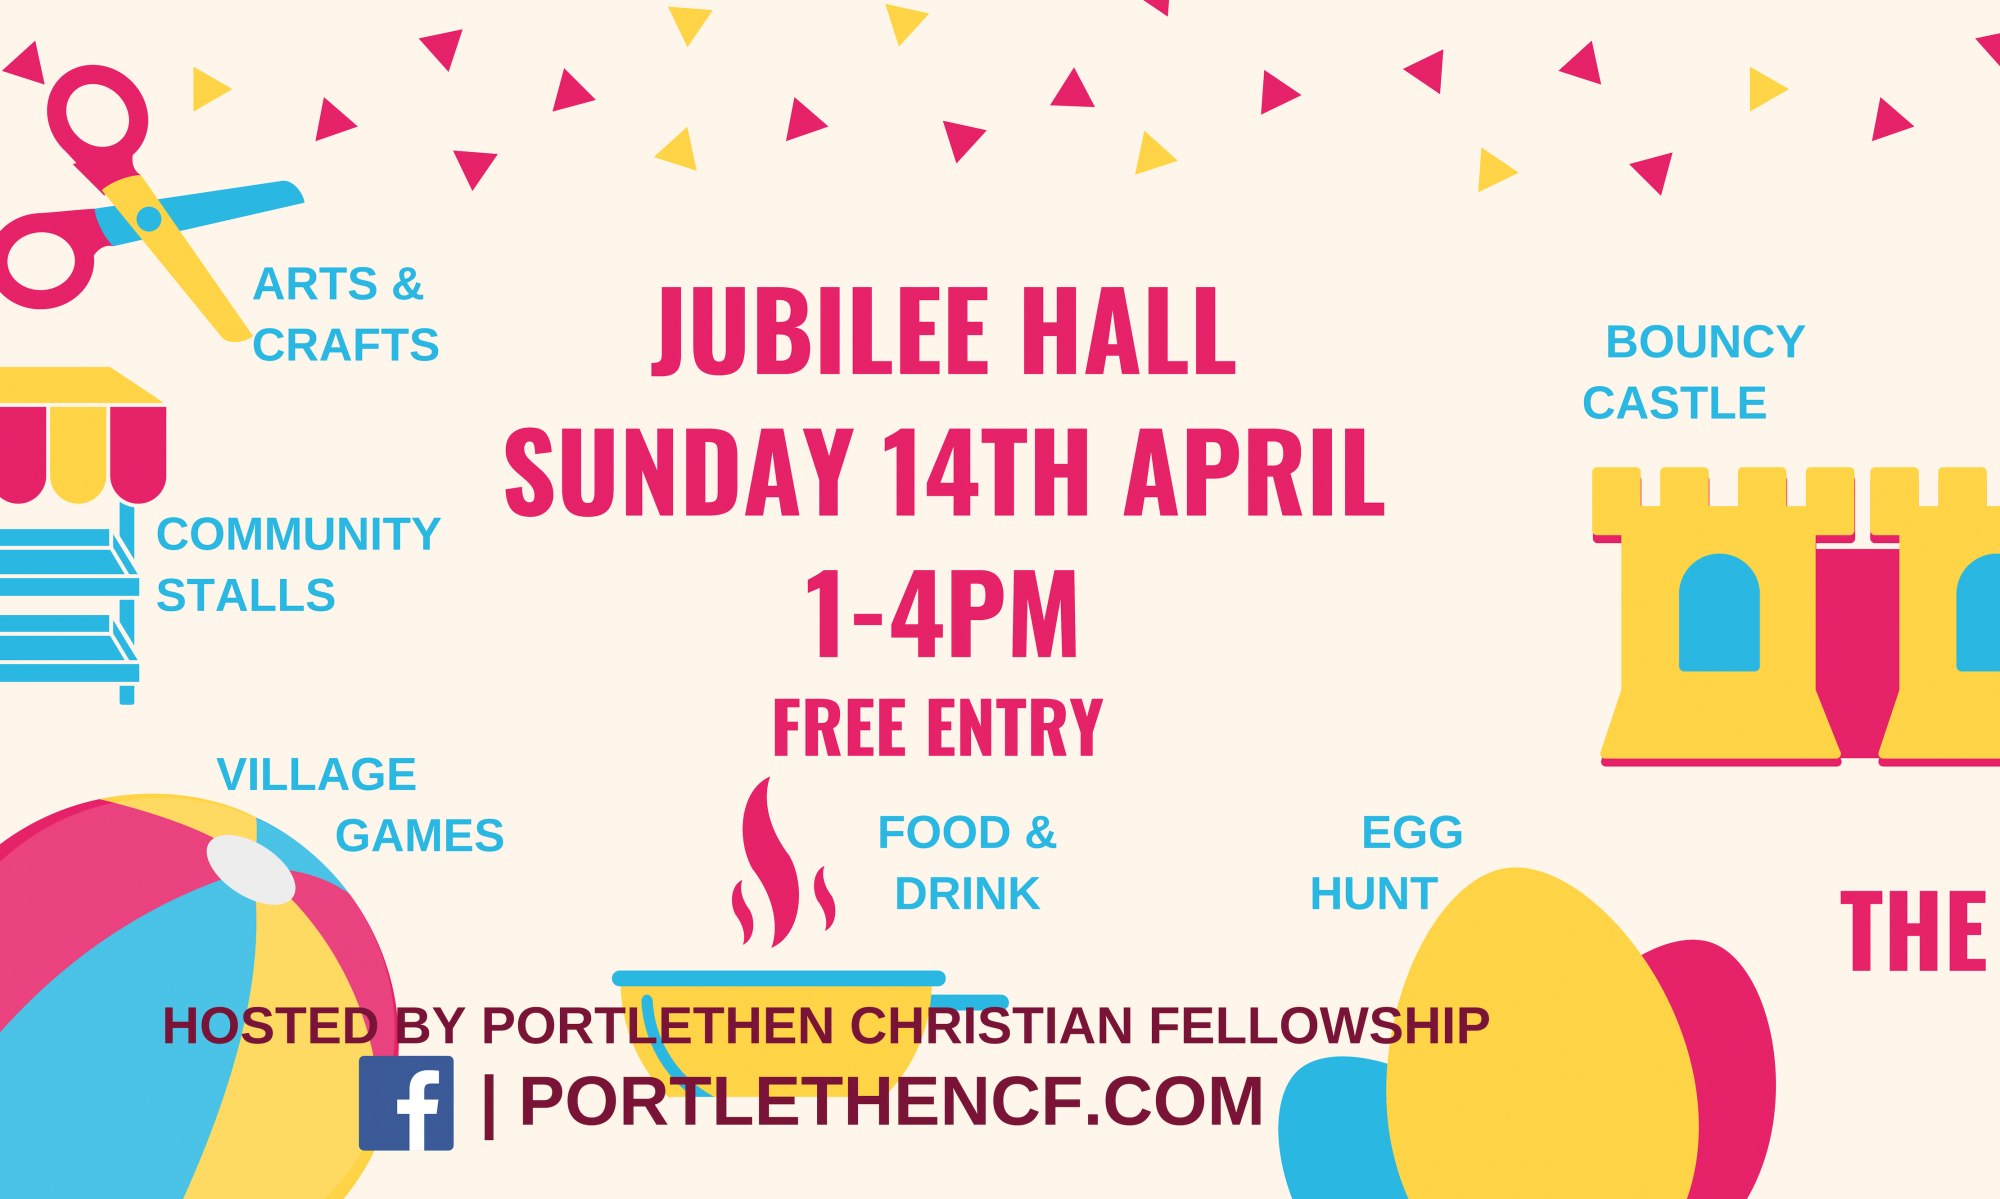 Portlethen Christian Fellowship